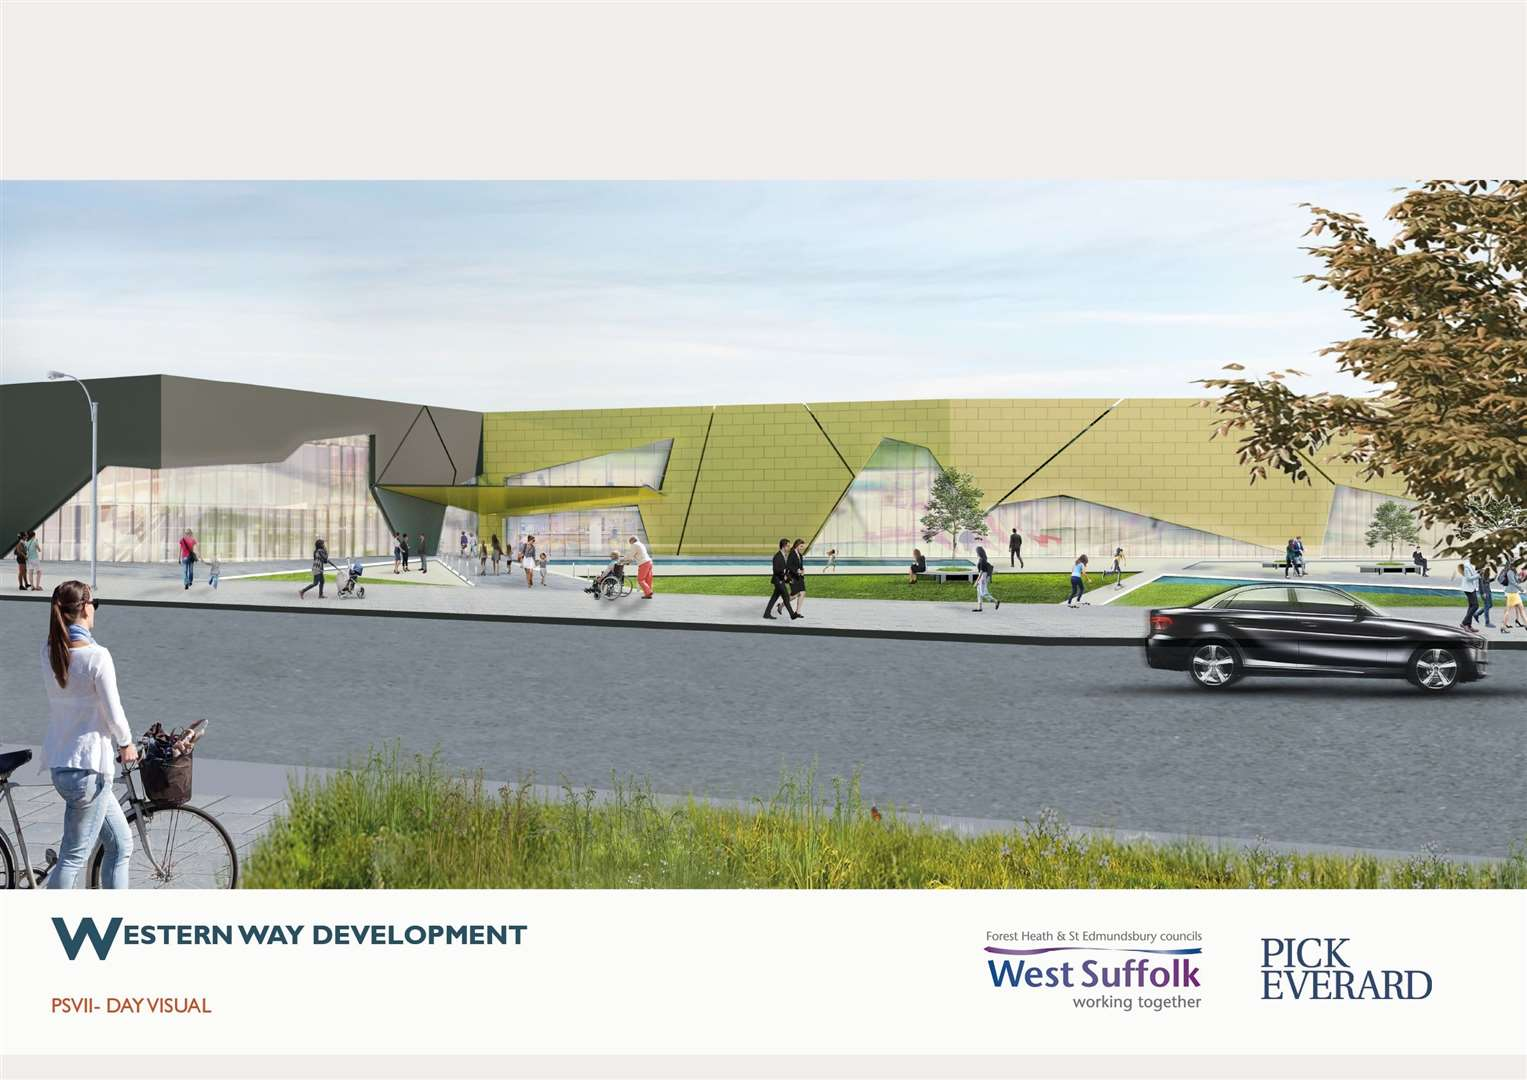 Western Way Development. Picture: Pick Everard. (13216255)